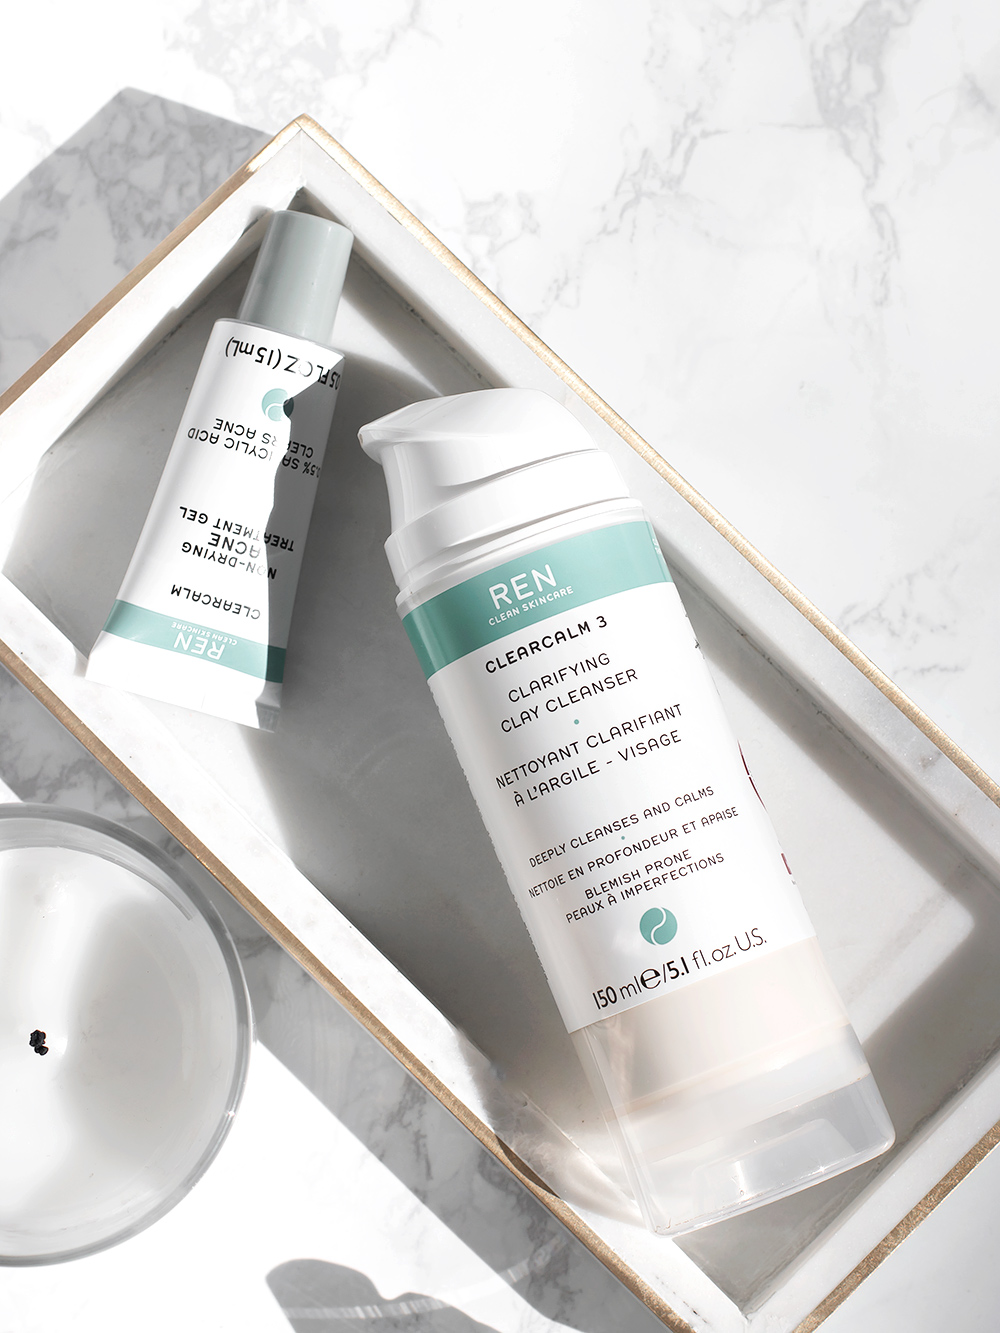 Ren Clearcalm Clay Cleanser and Acne Treatment Gel